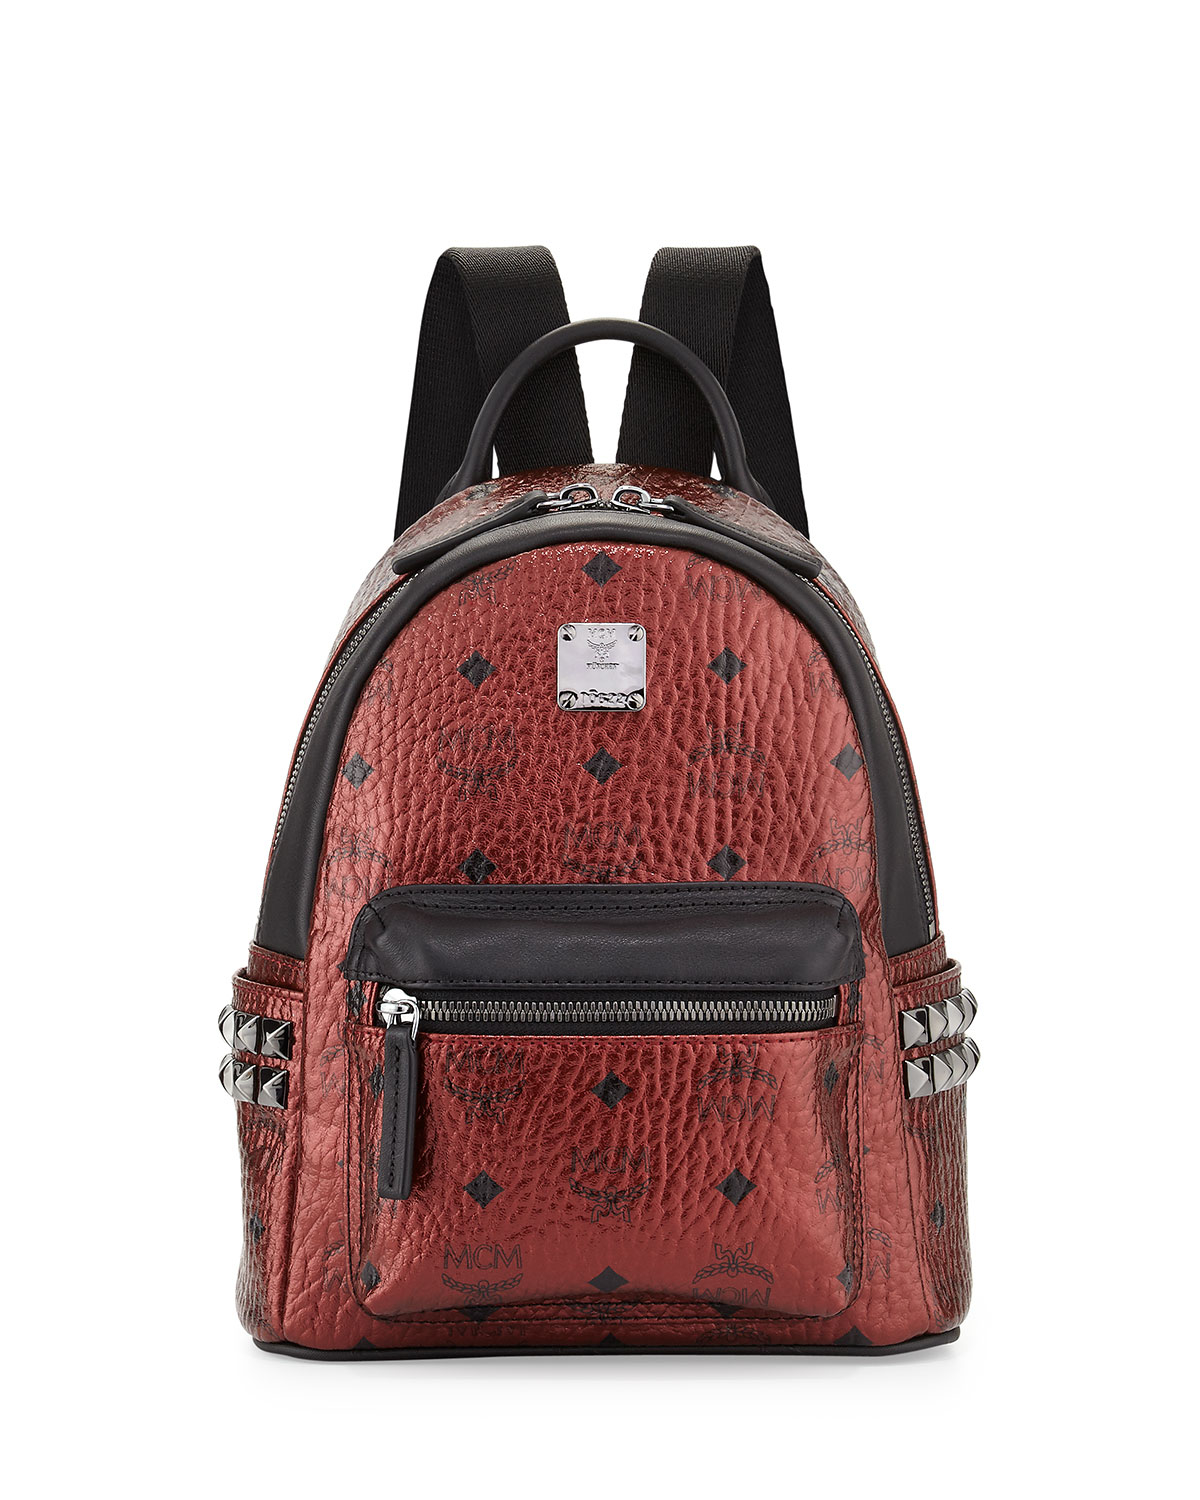 a8ce521c9247 Lyst - Mcm Stark Side Stud Mini Backpack in Brown